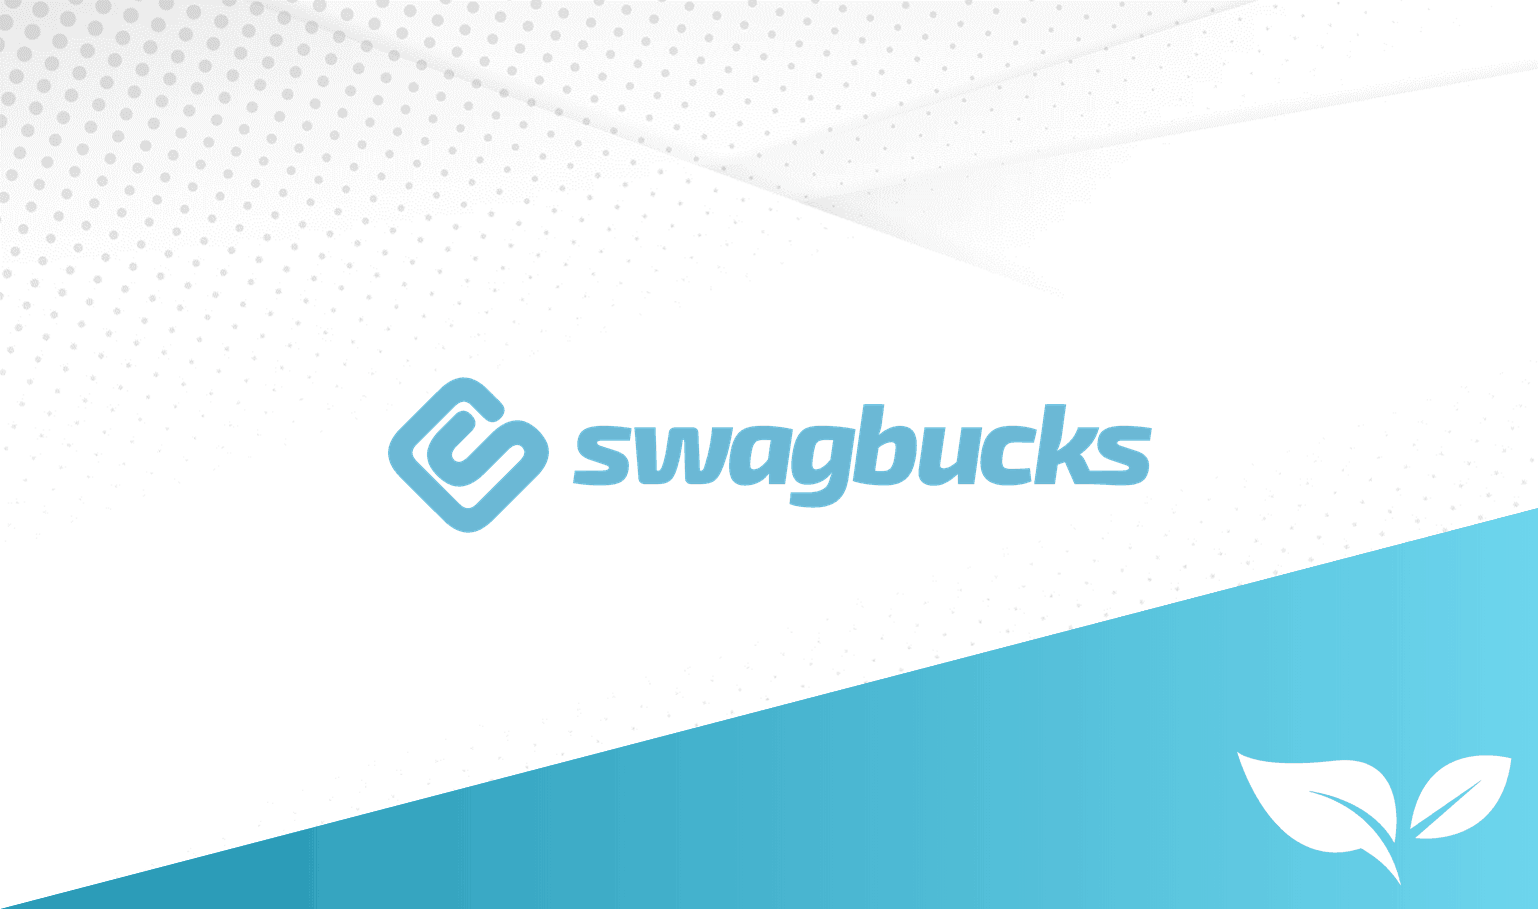 Swagbucks Review: Is It Legit and Safe to Use? (Codes, Hacks & More)